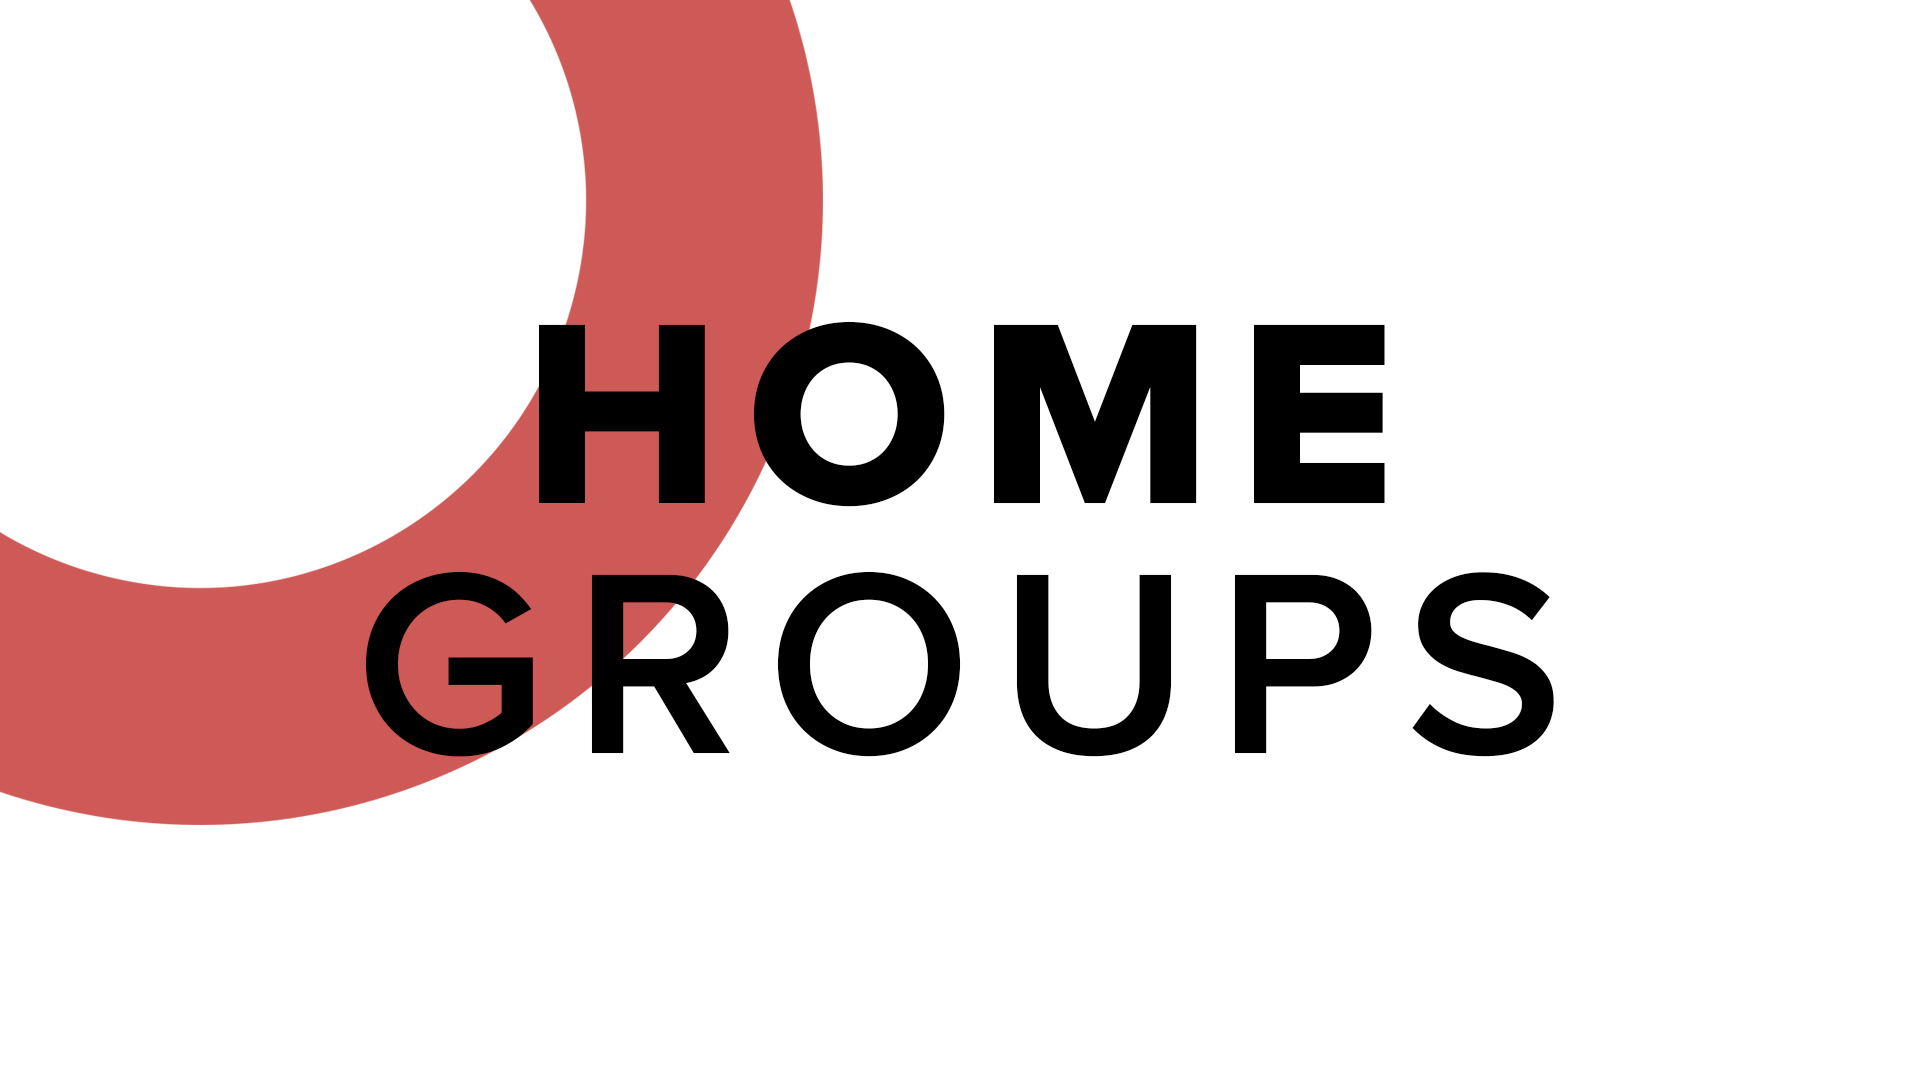 home groups - When you think of your standard